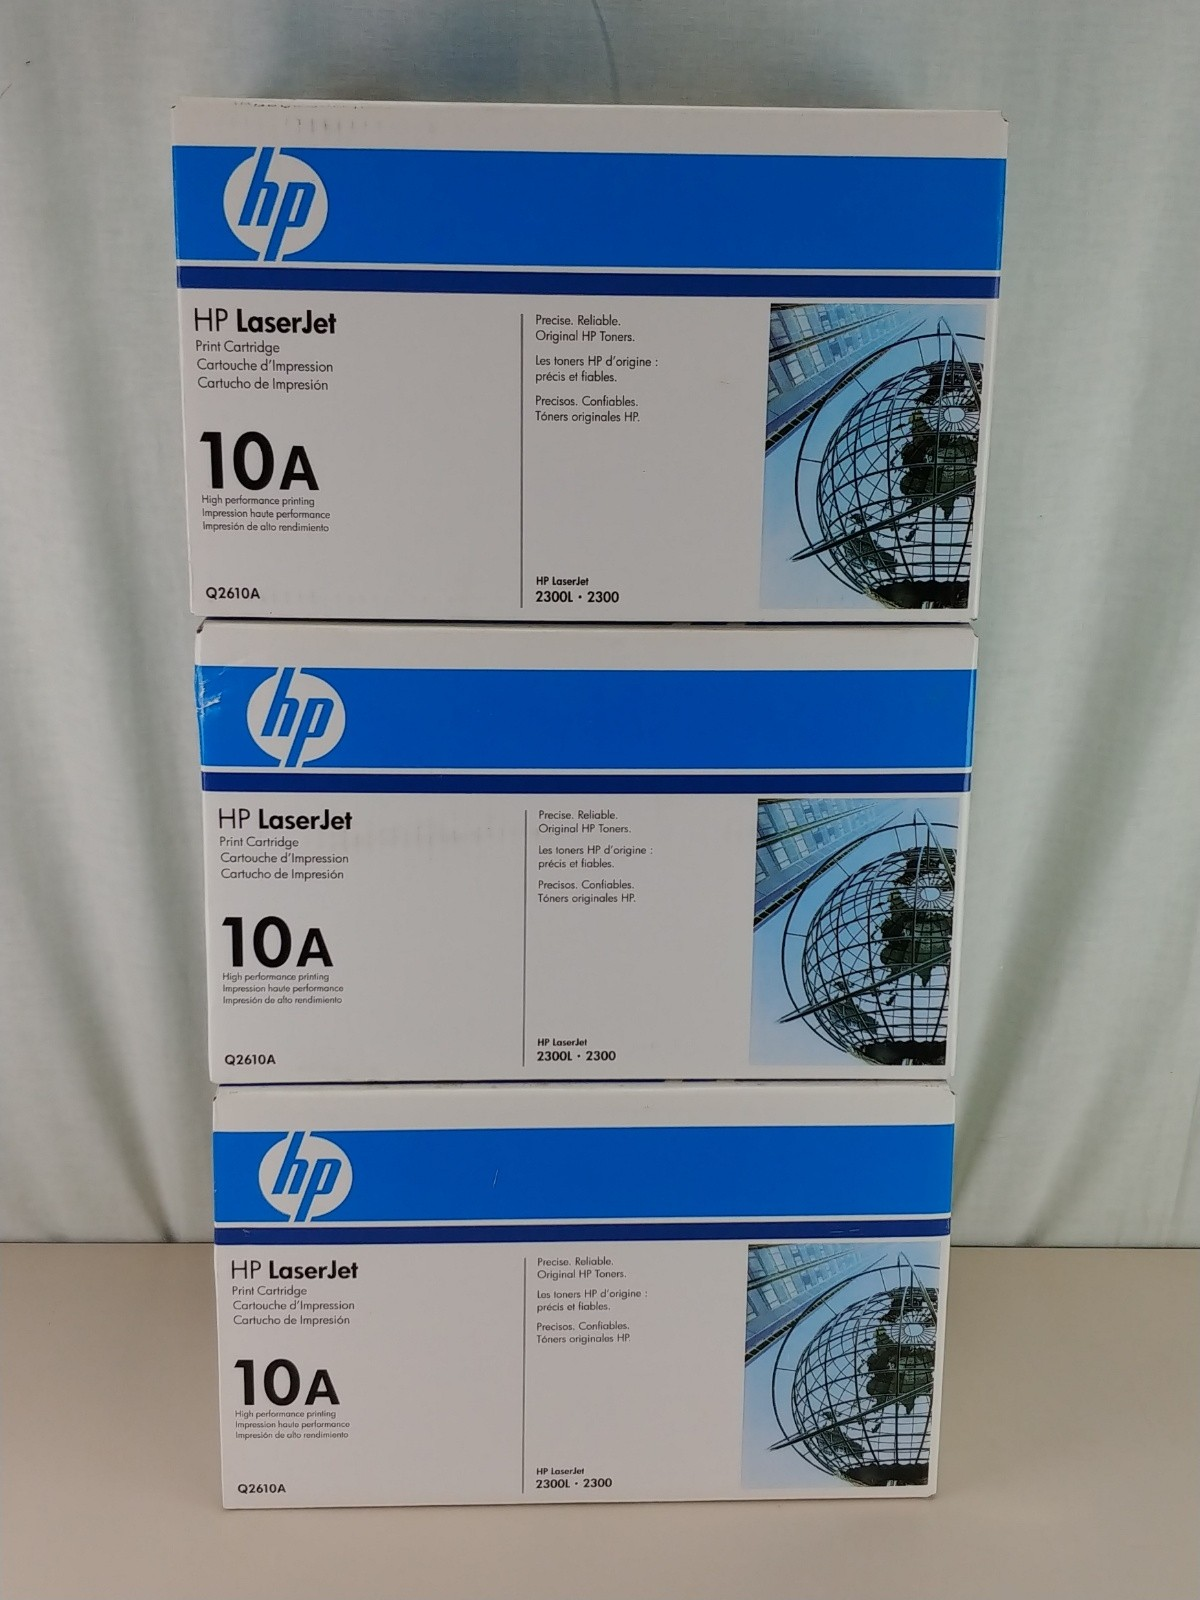 3x Genuine , HP Q2610A (10A) - BLACK Toner Cartridge, LaserJet 2300 /2300L